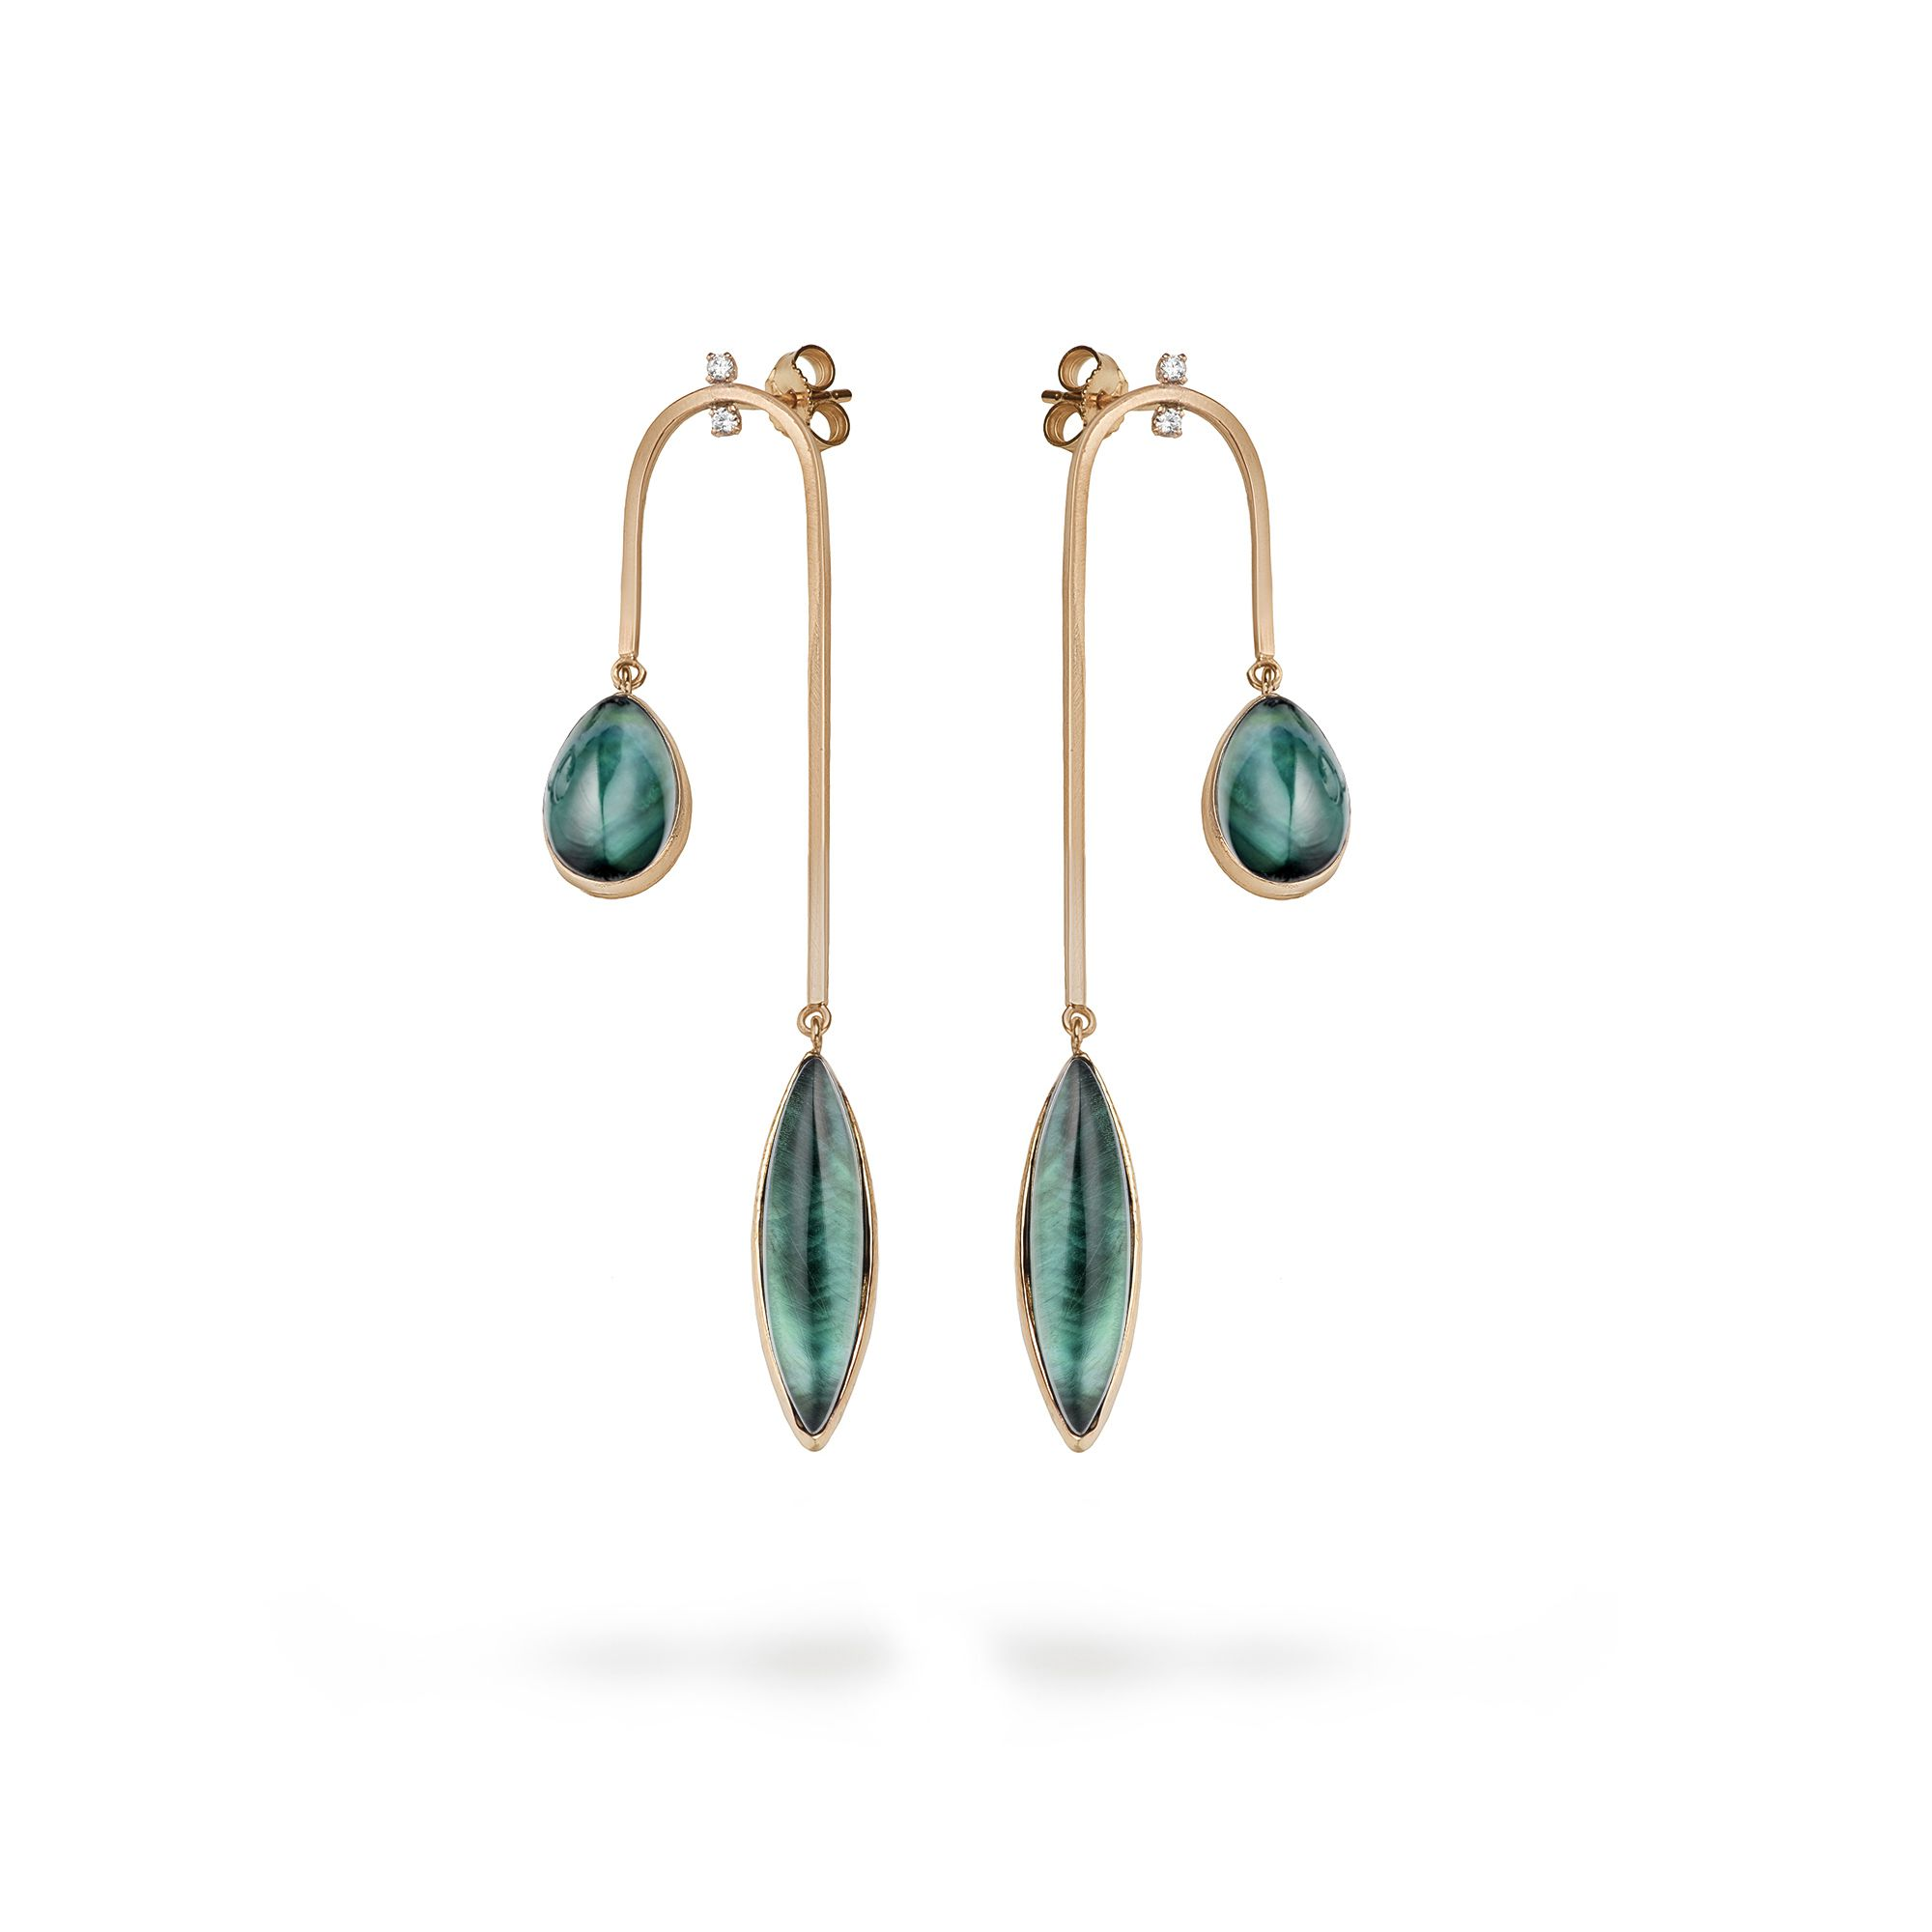 Double drop earring Rose gold earrings with doublet stones